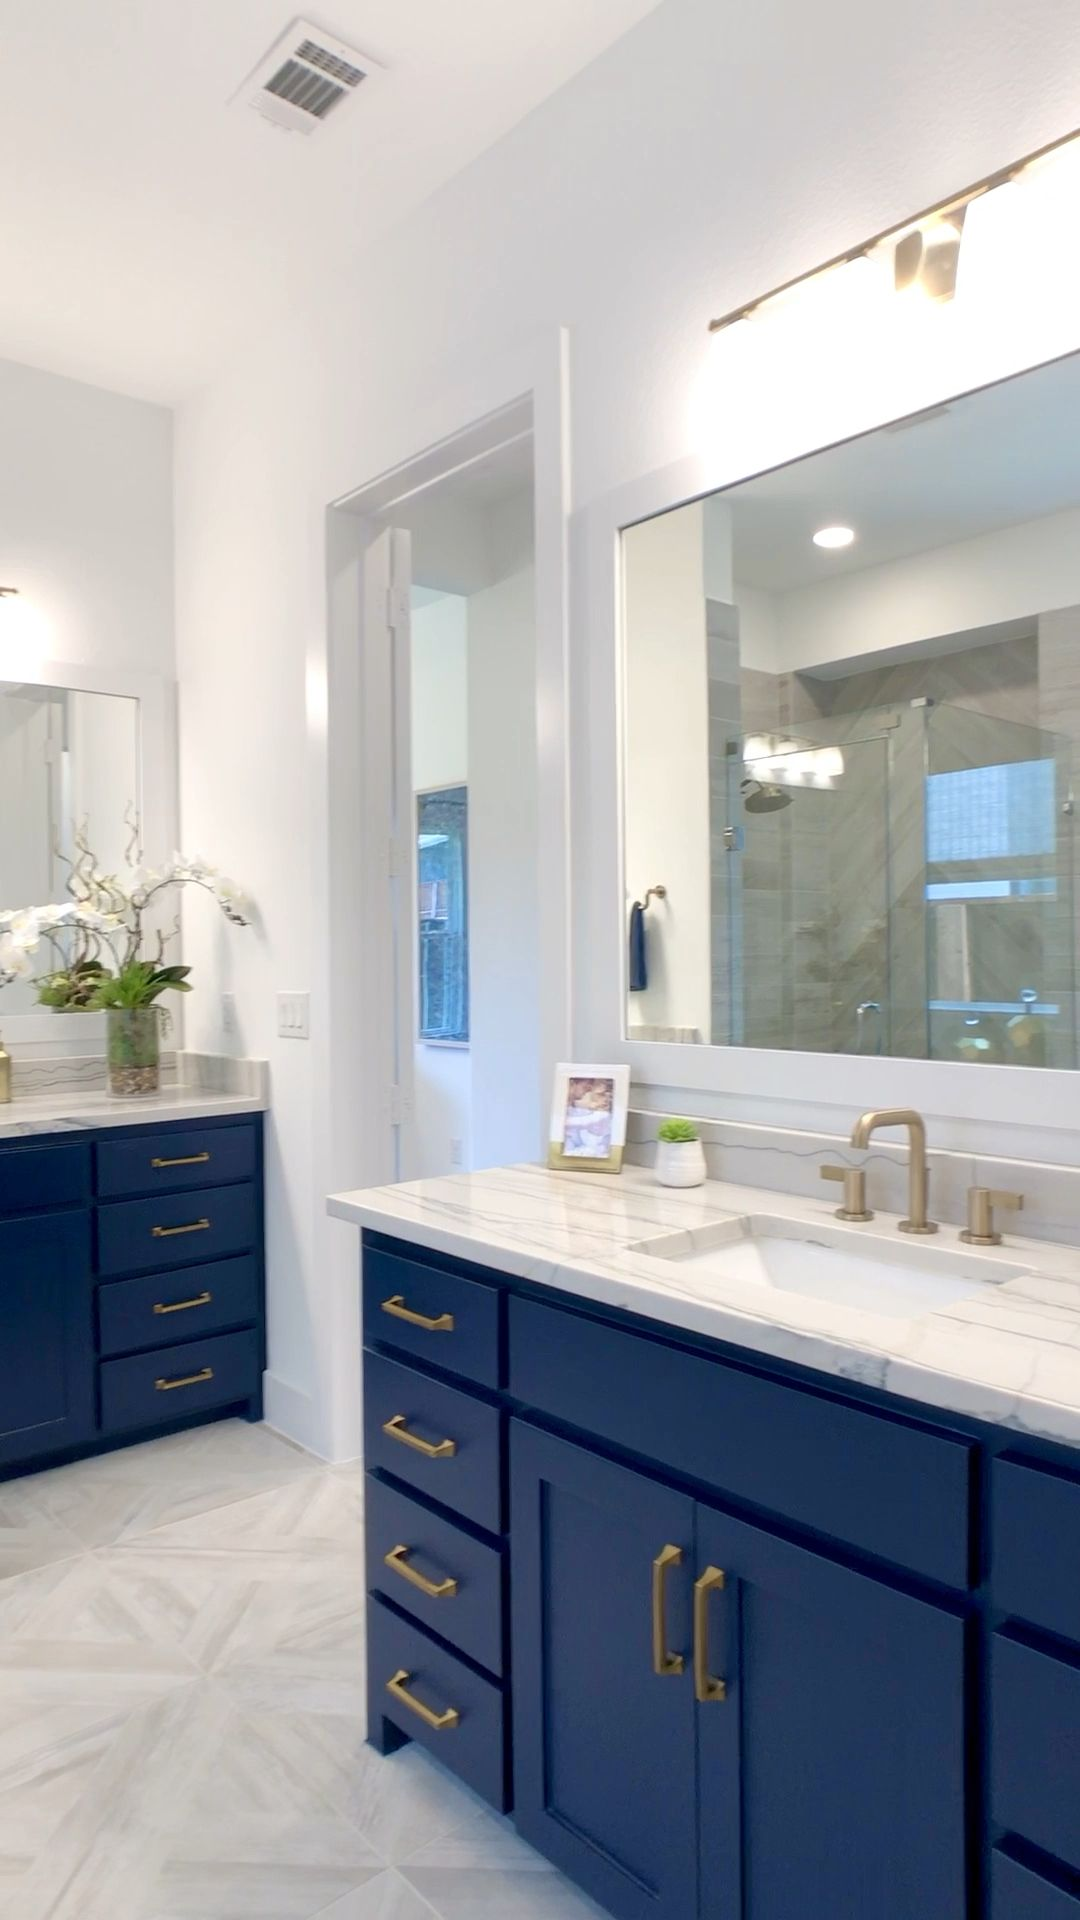 Photo of Navy Blue Bathroom cabinets with Gold Hardware